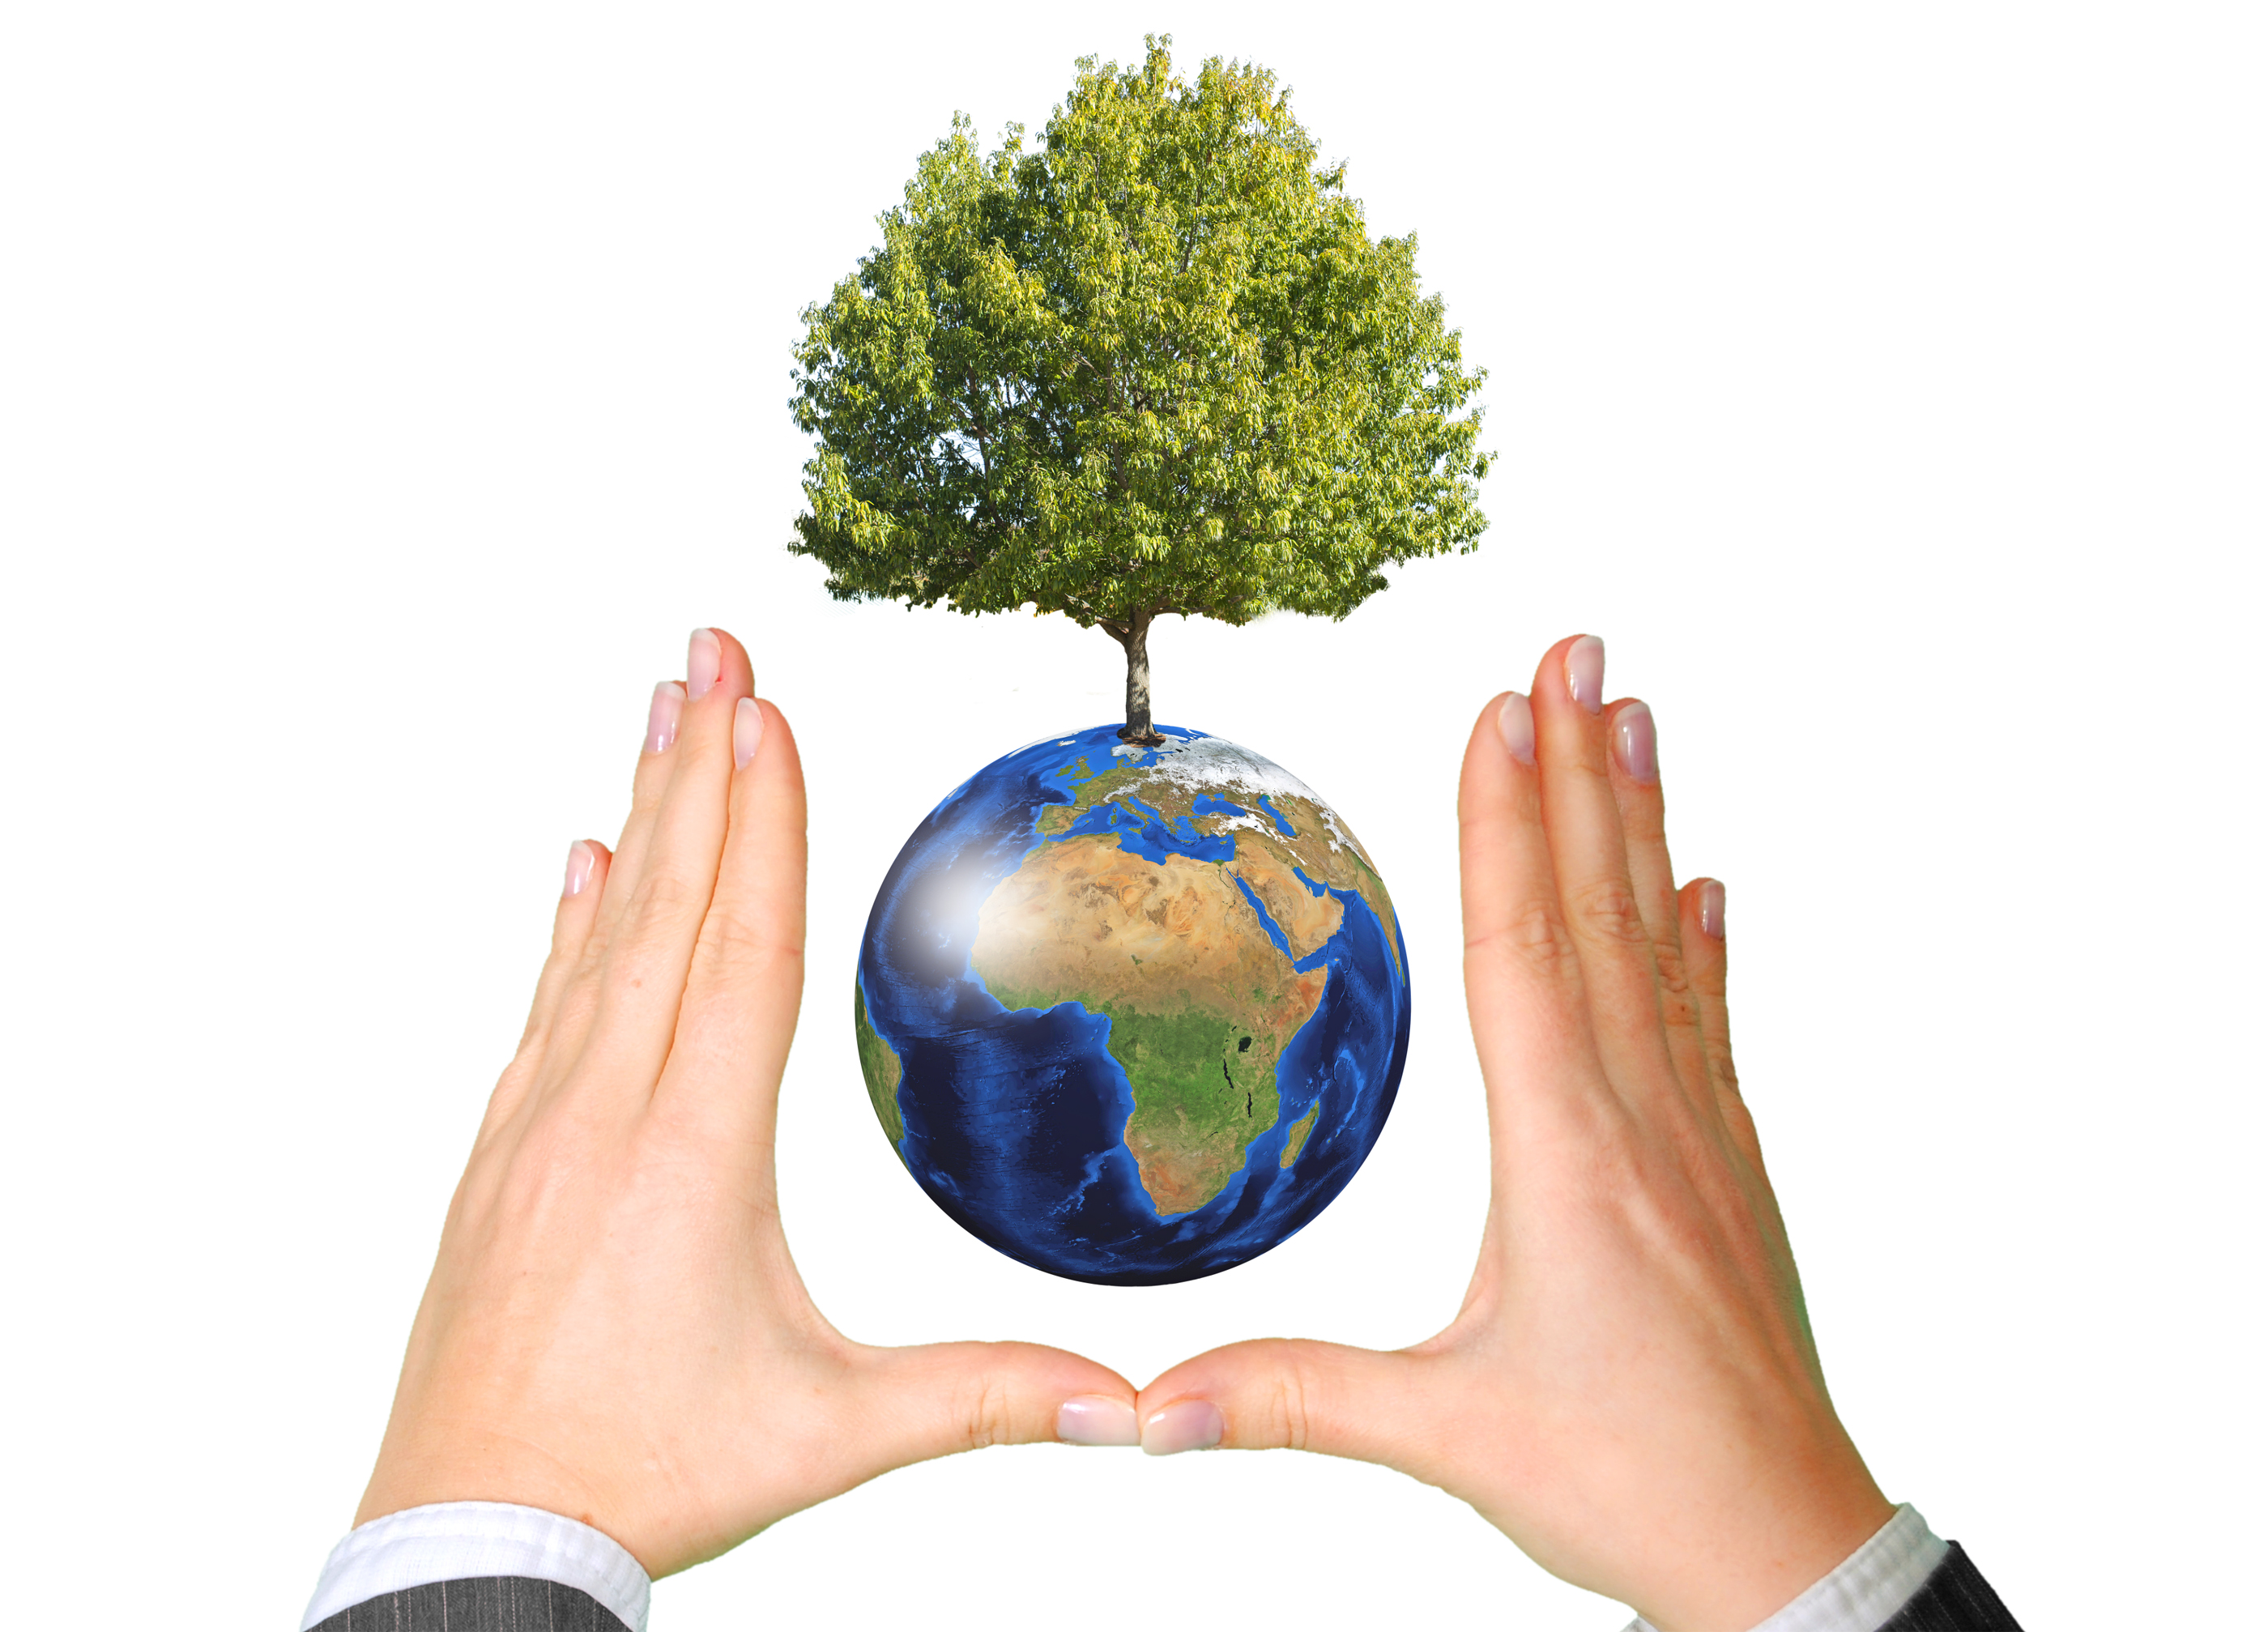 Earth with Tree between Hands - Ecology Concept, World, Plant, Human, Idea, HQ Photo